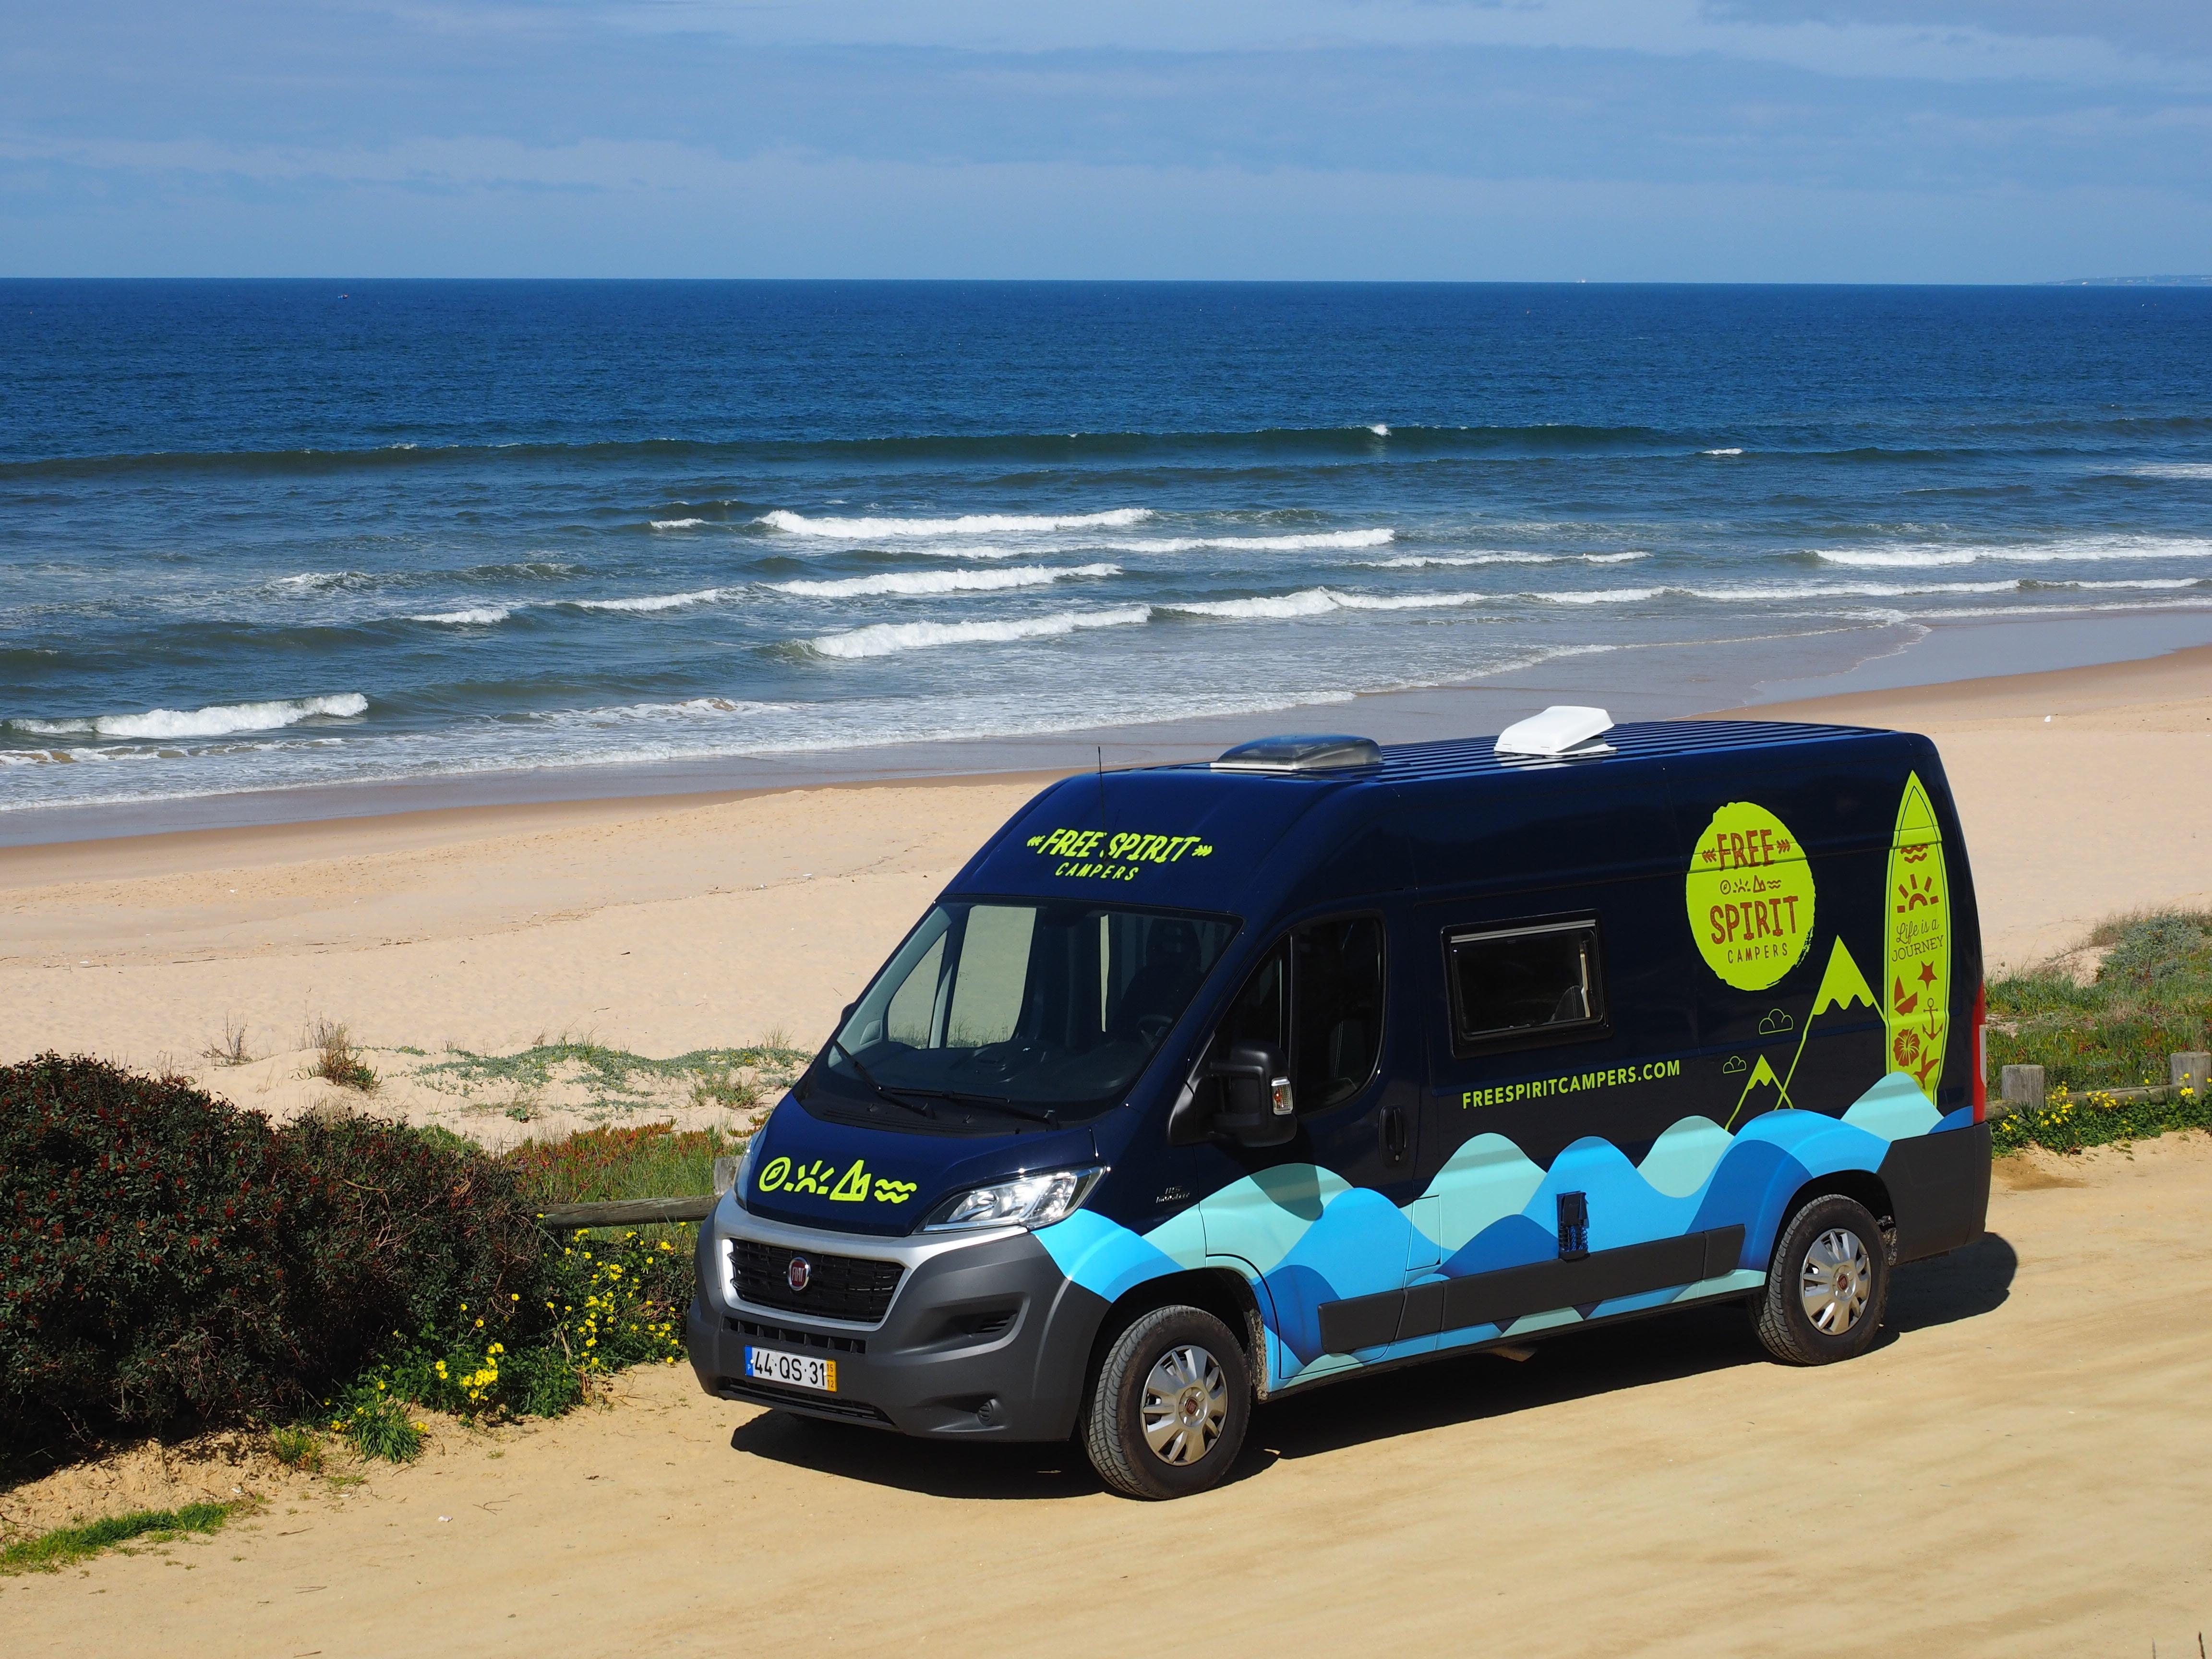 83a22dd50b Surfholidays.com  Perfect Road trip - Fiat Ducato Campervan for 4 to ...